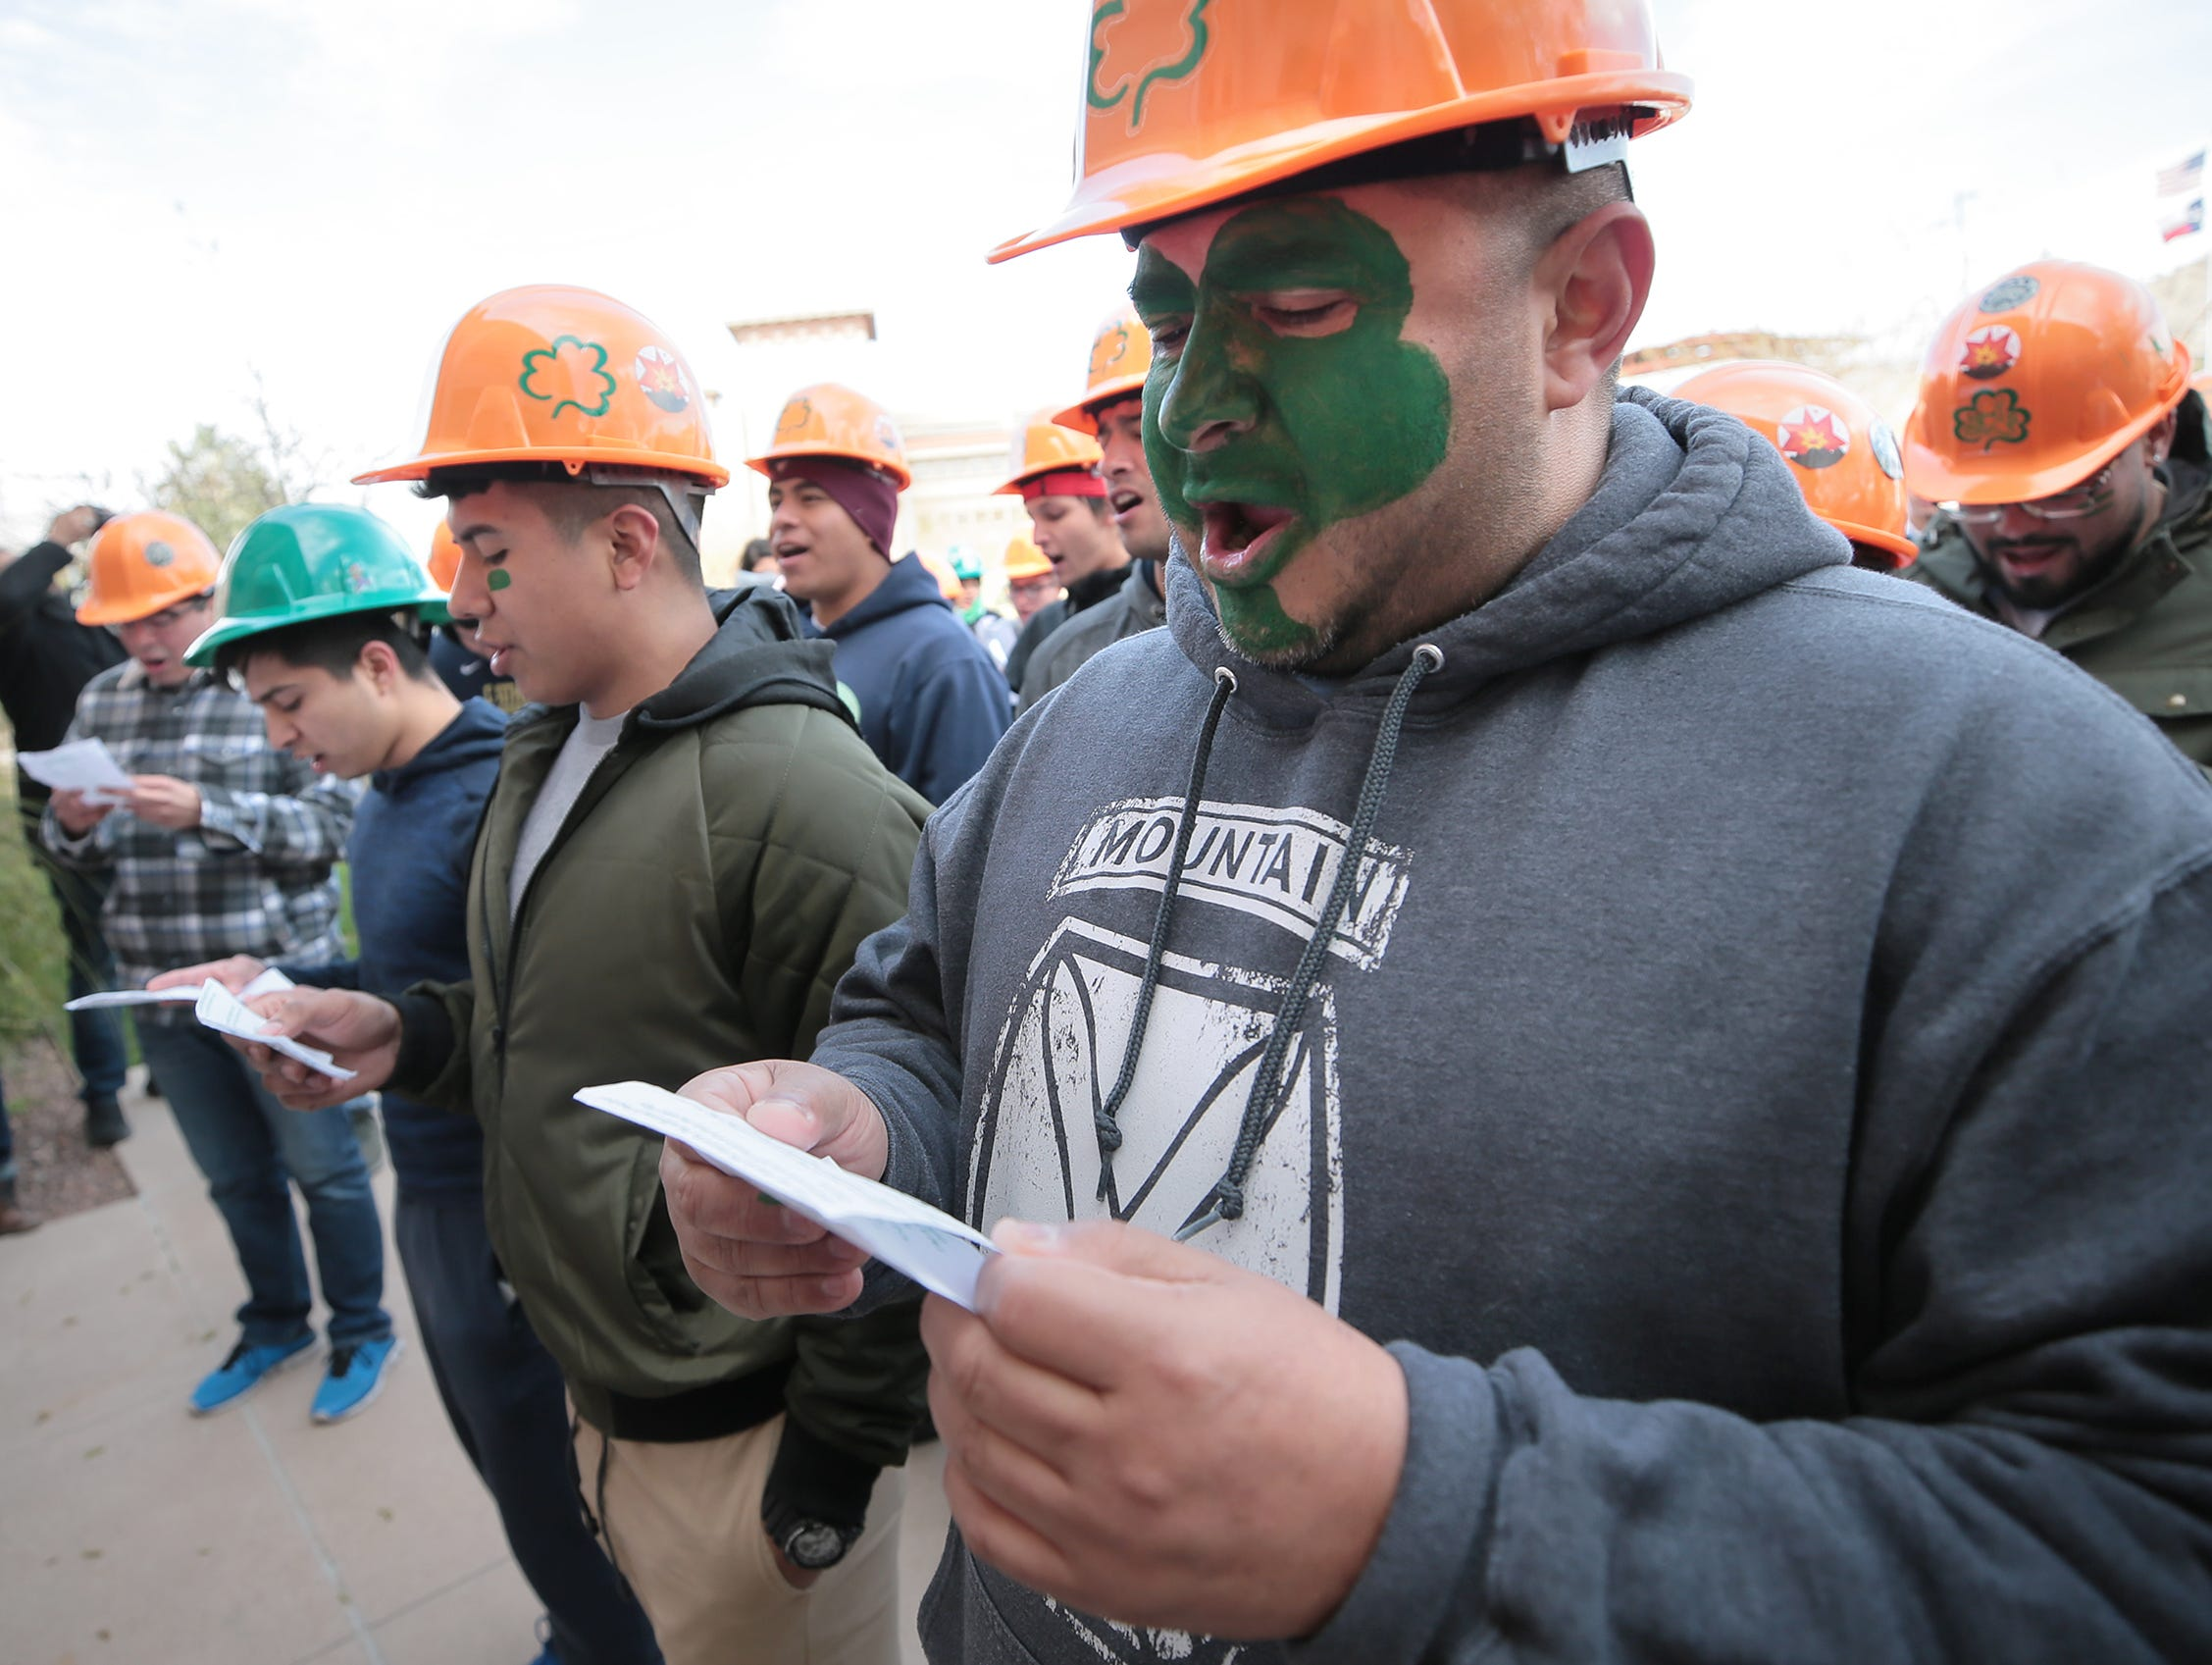 """UTEP Engineering students participated in Texas College of Mines day on campus. The day of events began with a serenade of UTEP President Dr. Diana Natalicio. Students then marched to the """"M"""" for a white washing followed by several other events. TCM Day reminds students of the school's roots and honors the patron saint of engineering, St. Patrick."""